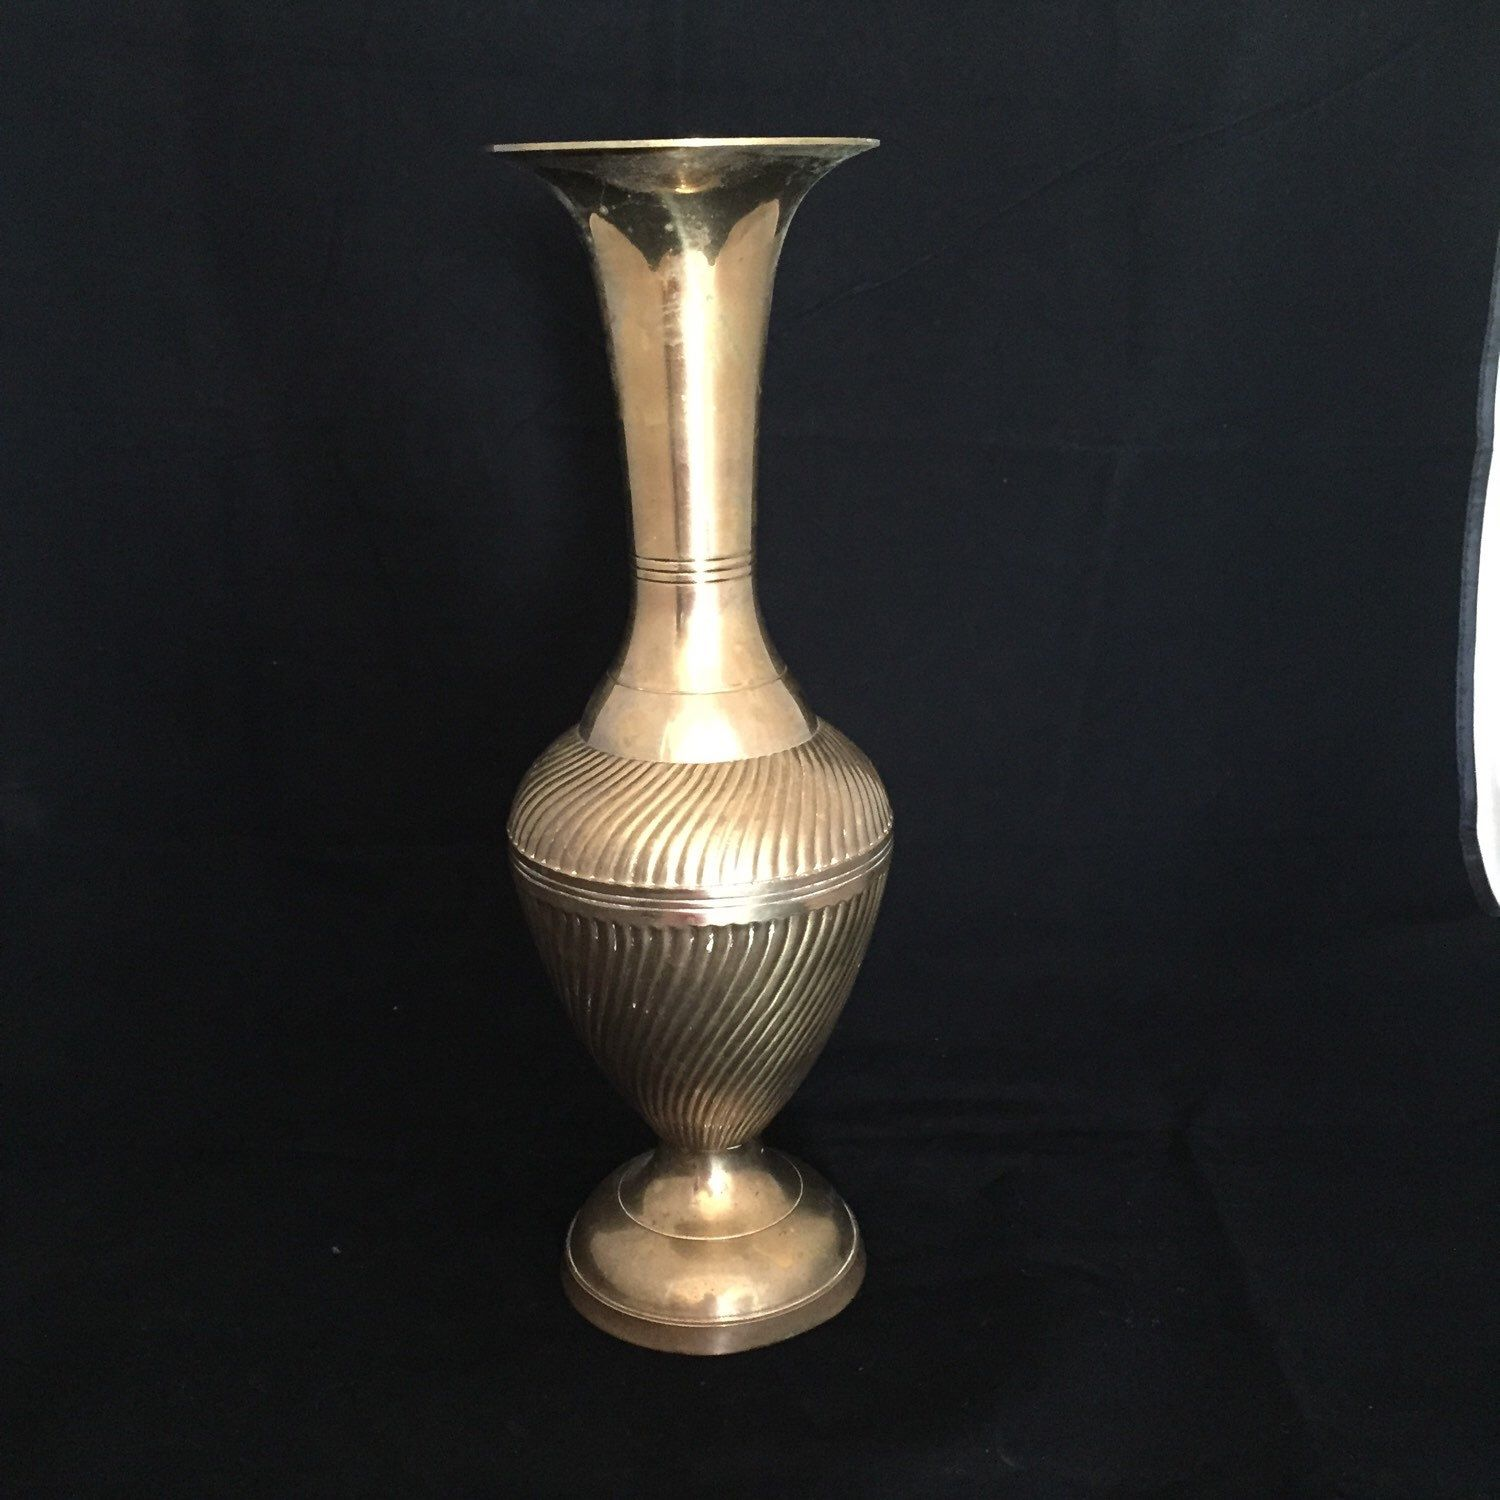 A personal favorite from my etsy shop httpsetsyca on sale solid brass vase tall majestic brass statement piece tall brass decor vase by glyndasvintageshop on etsy reviewsmspy